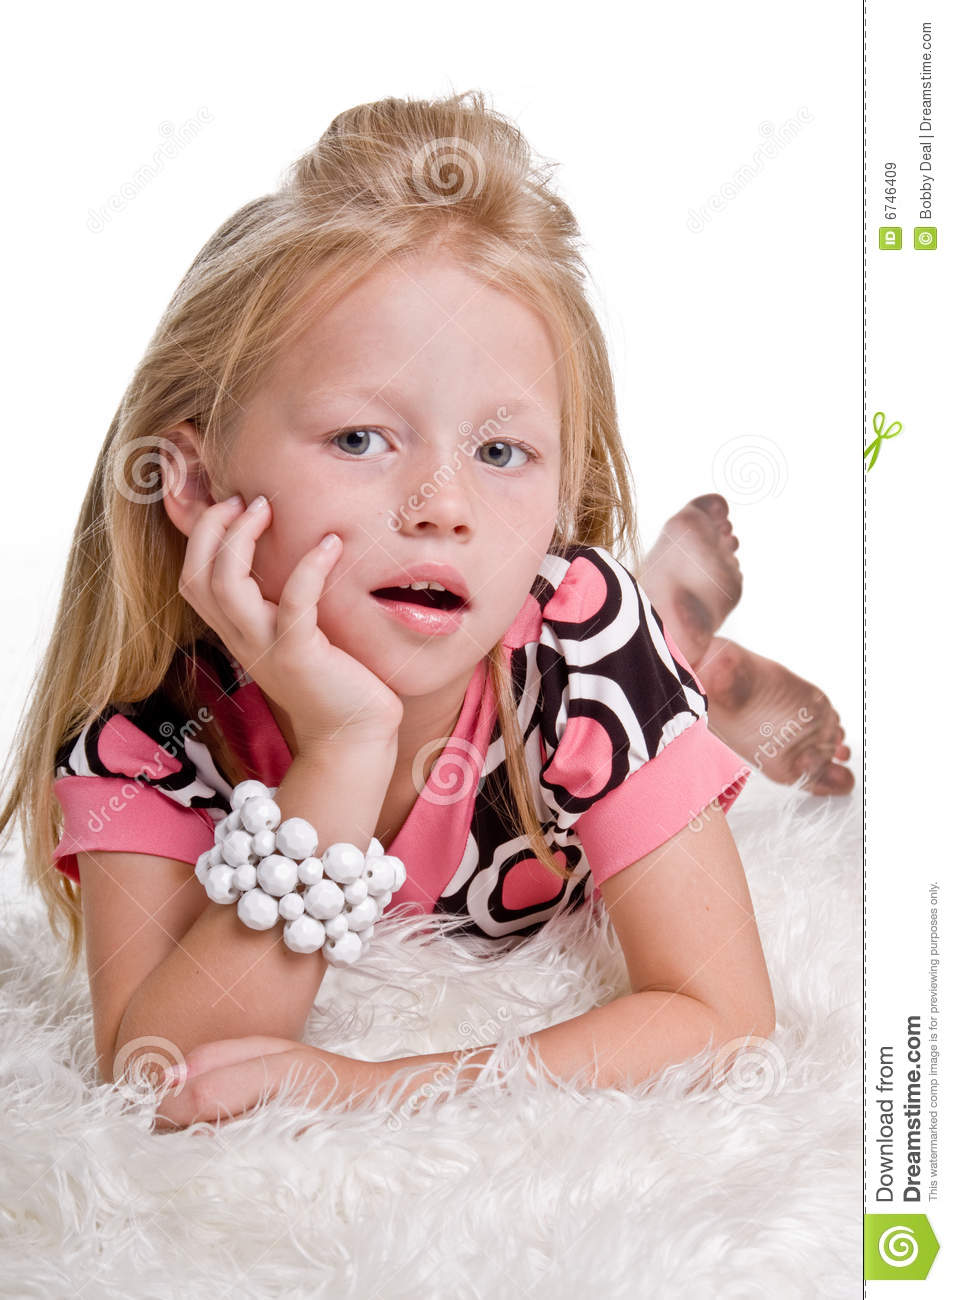 ... feather boa with a white pearl bracelet on her arm with dirty feet